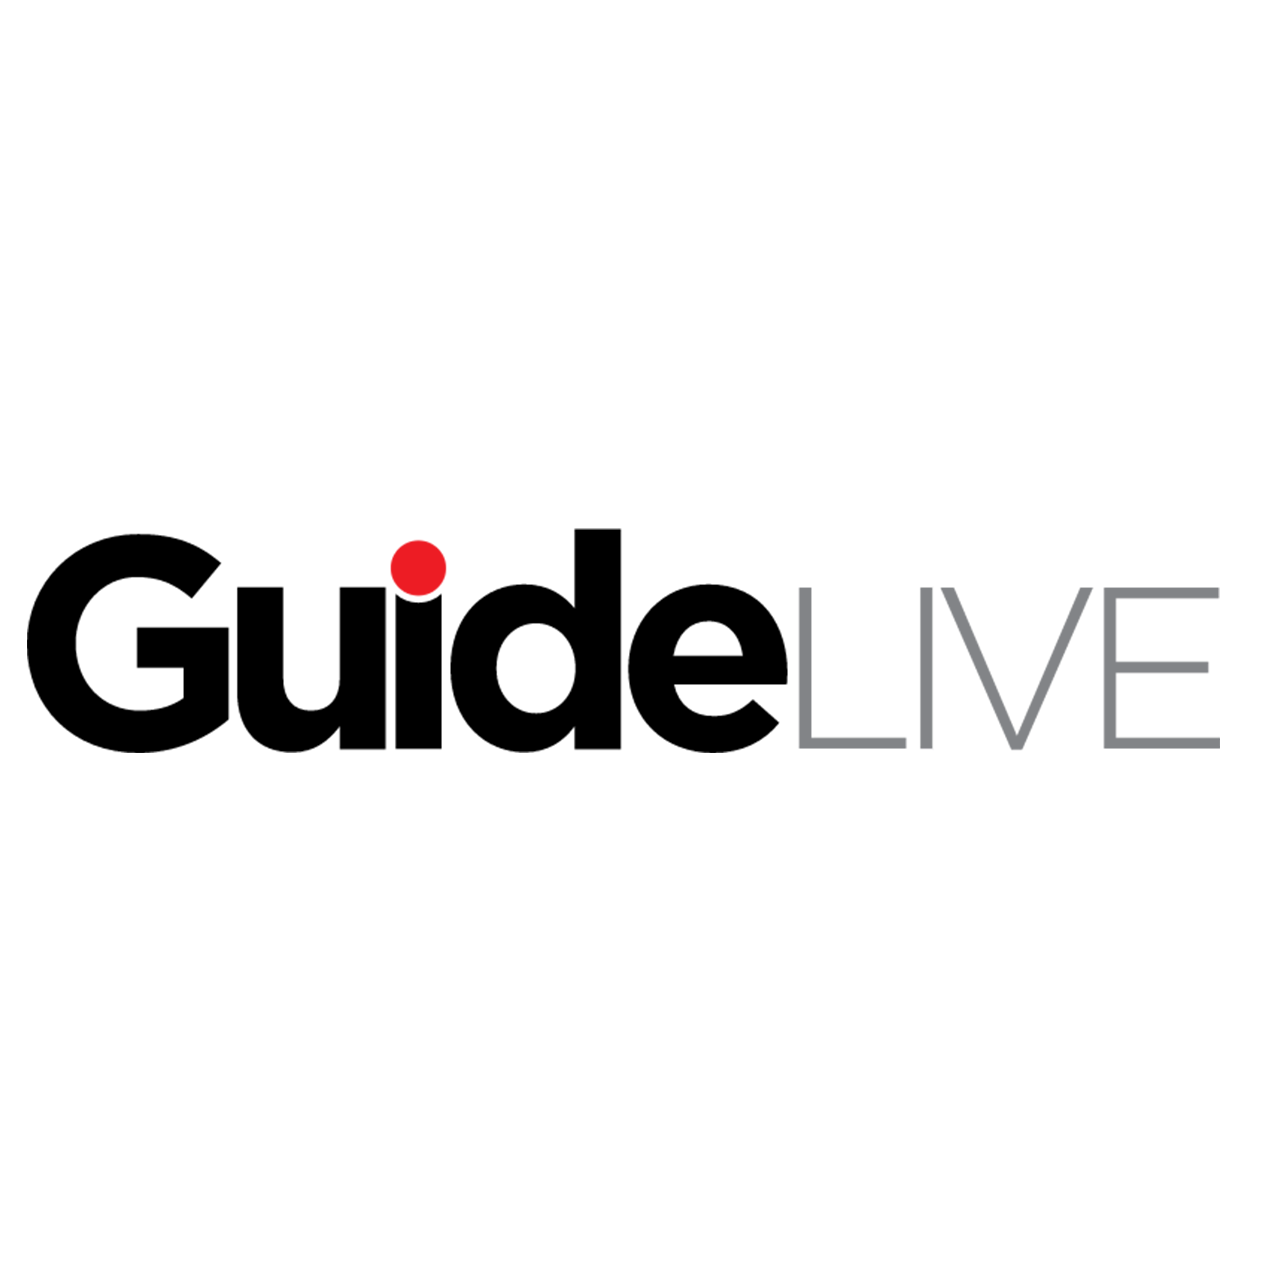 GuideLive